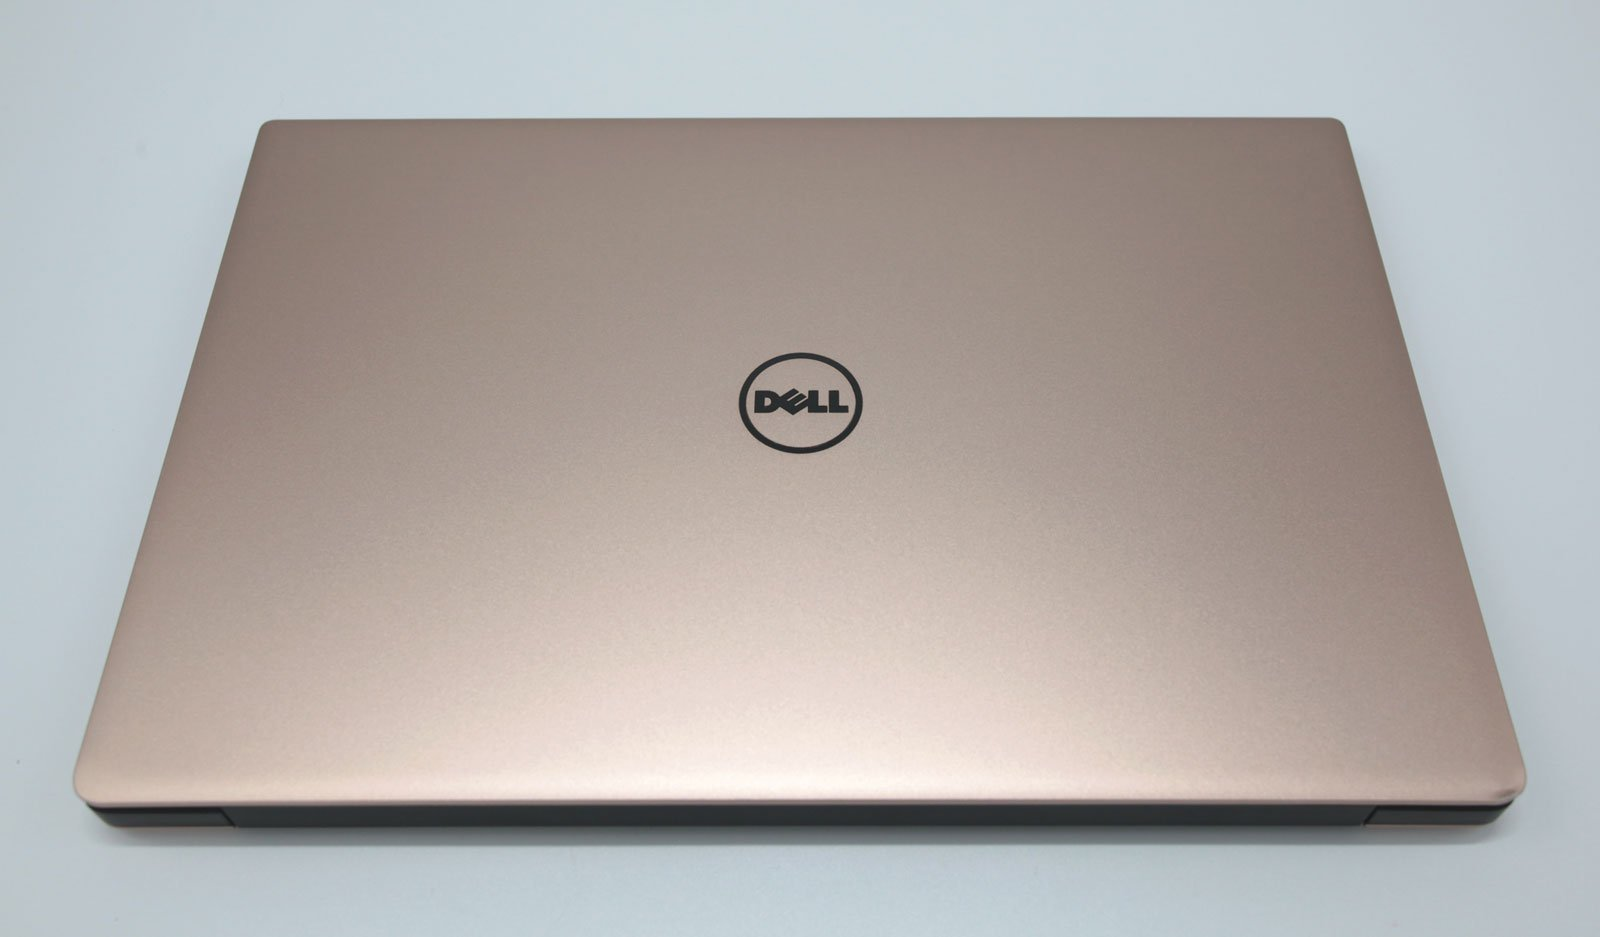 Dell XPS 13 9360 Laptop: Intel Core i7 7th Gen, 256GB SSD, 8GB RAM, Warranty - CruiseTech